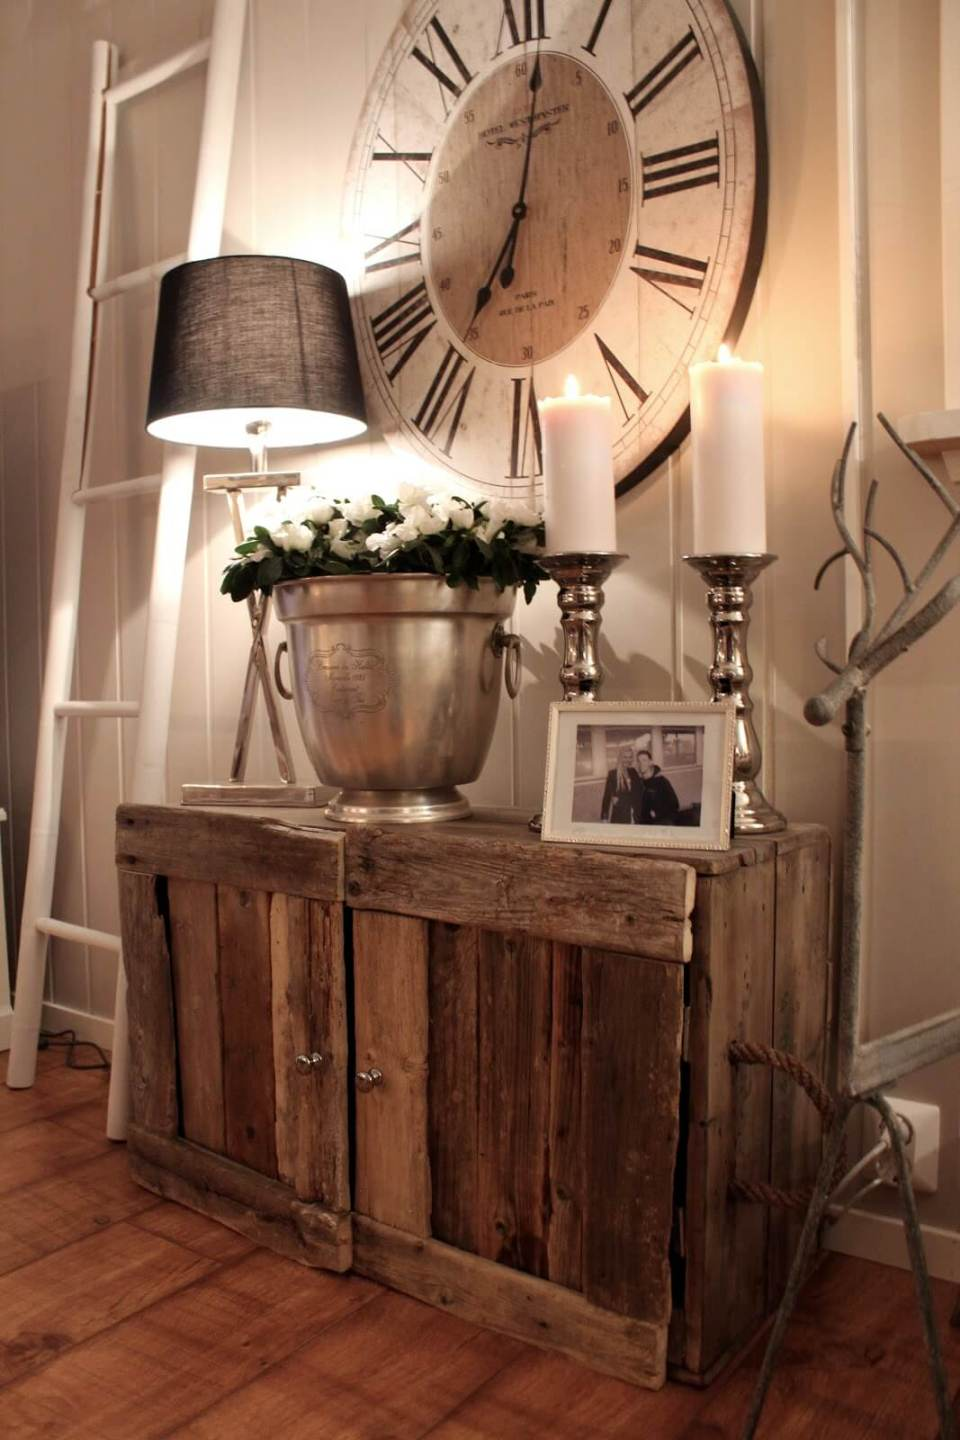 25 Rustic Entryway Decorating Ideas That Everyone Will Love